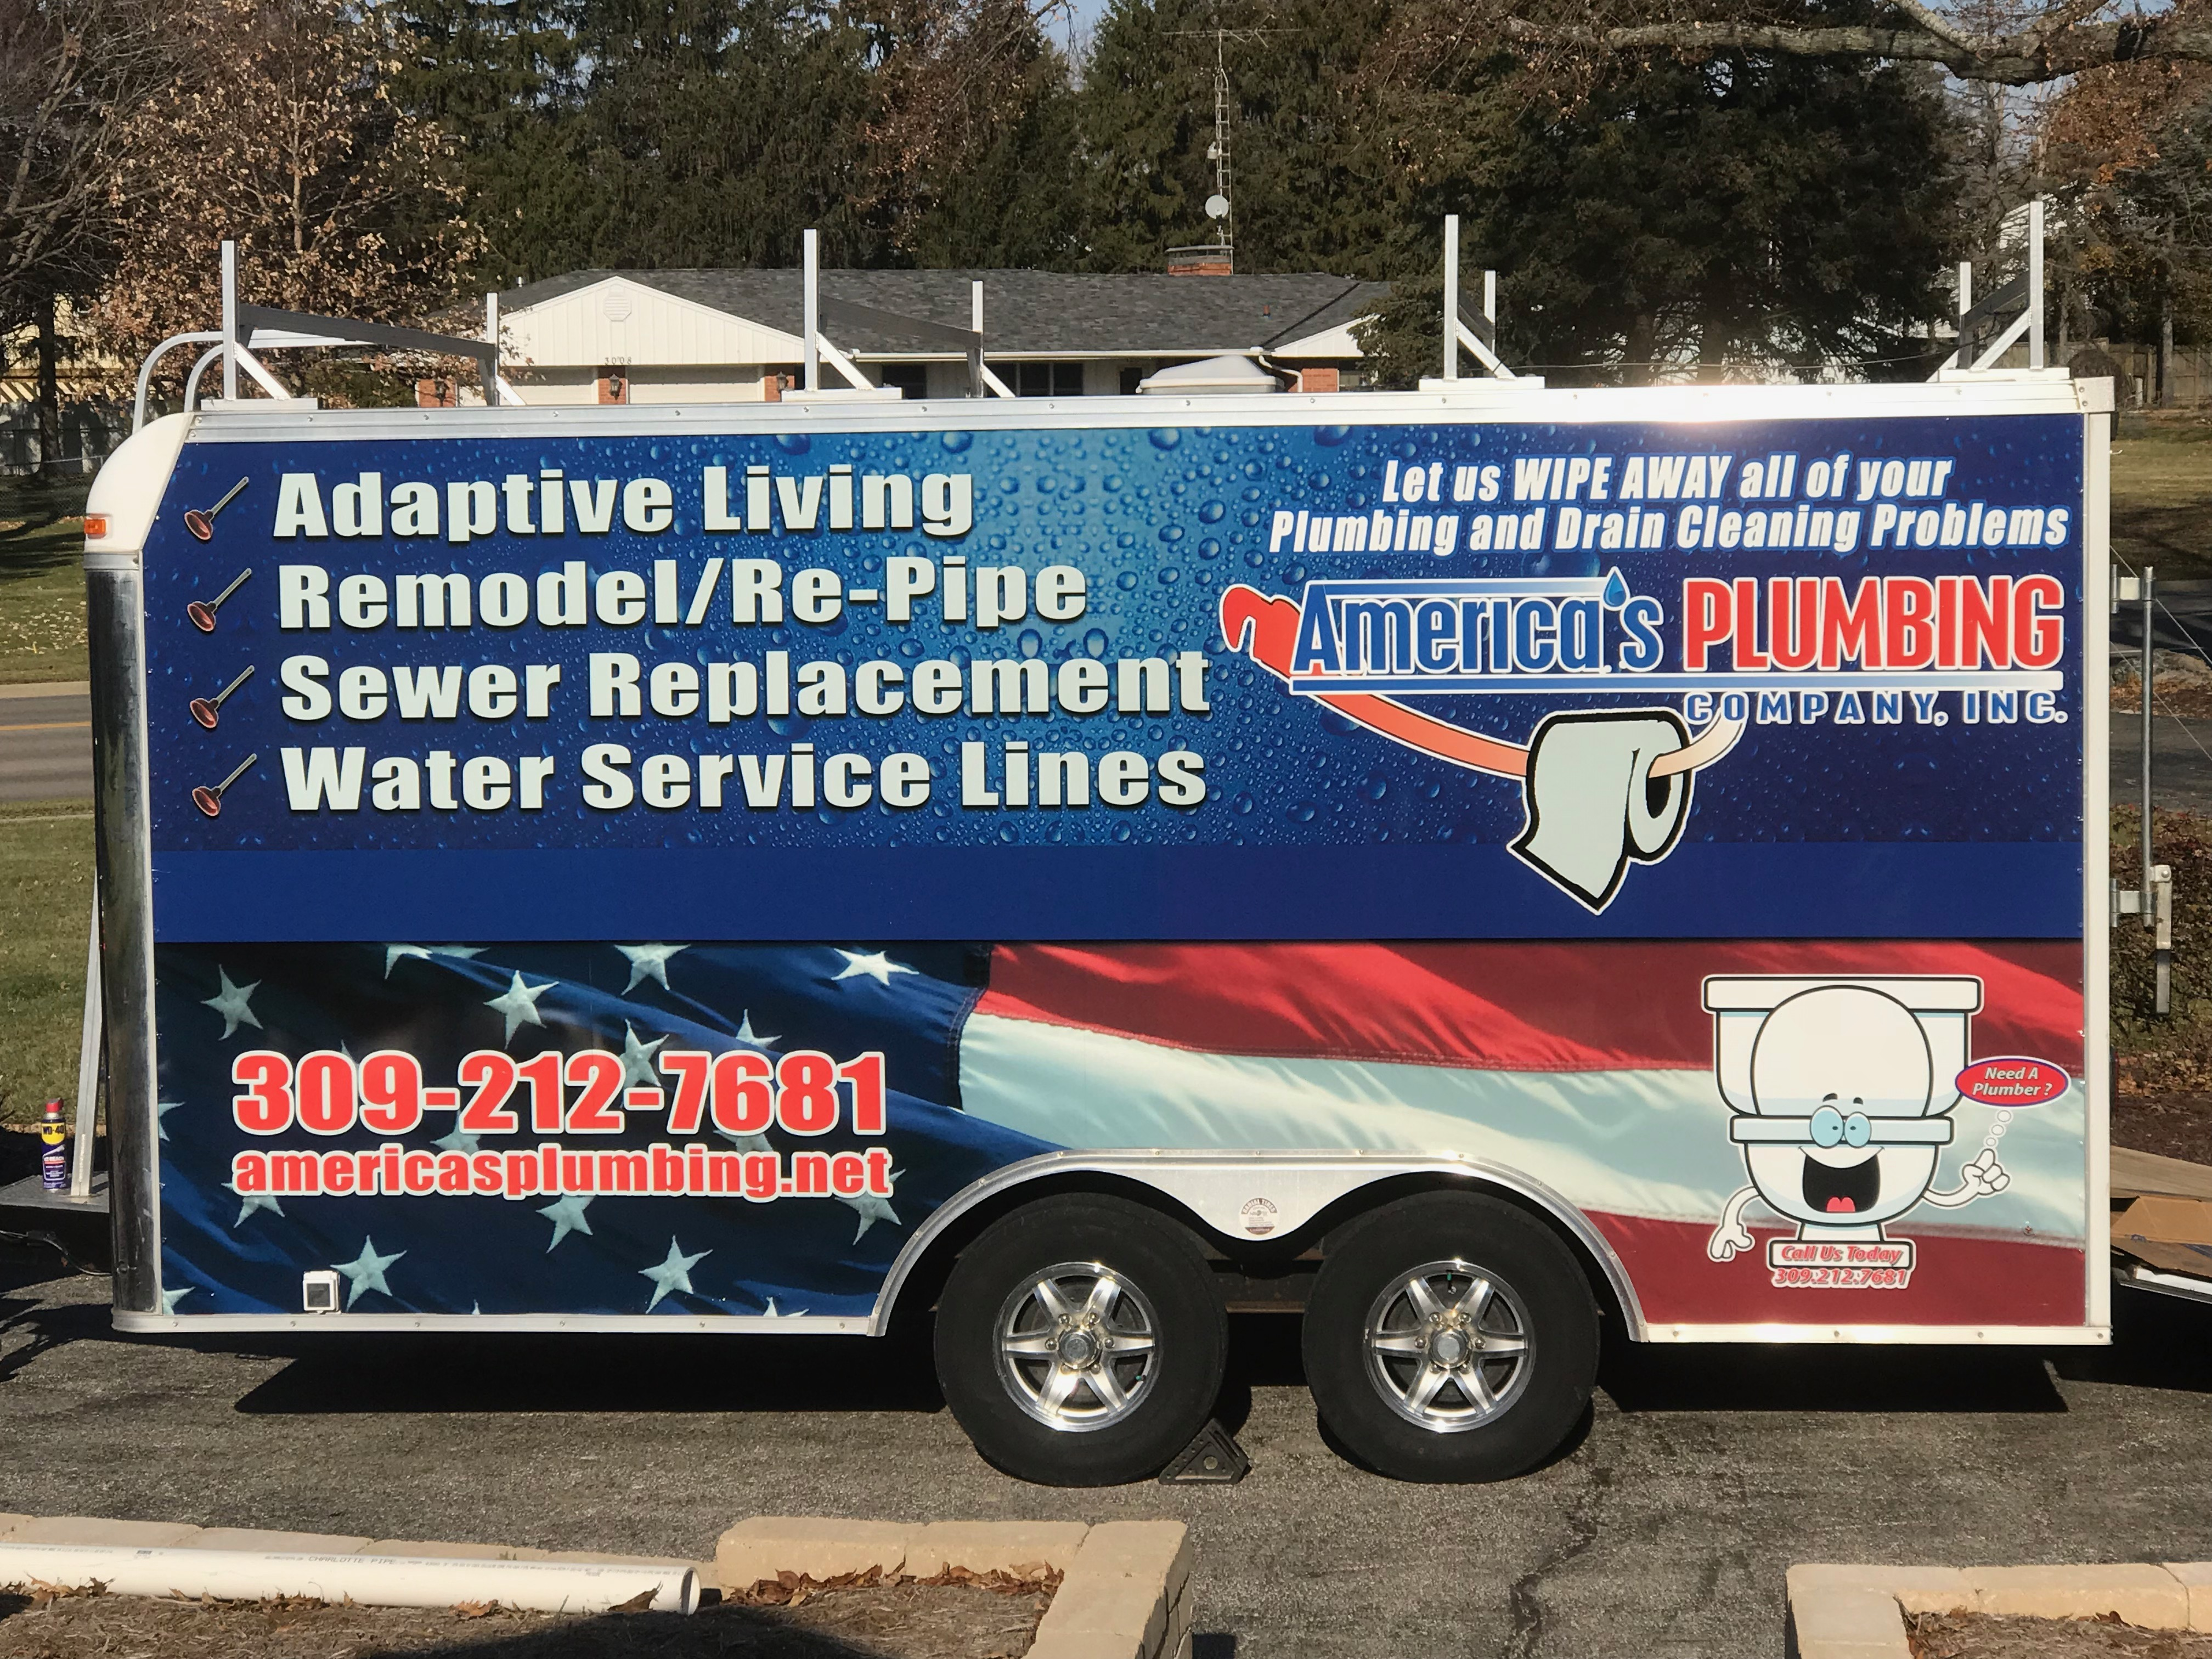 crack eau d bathroom consommations intactplumbing sacramento les local pinterest on best heroes supply plumbing bathrooms plumbers images infographie sur are une services